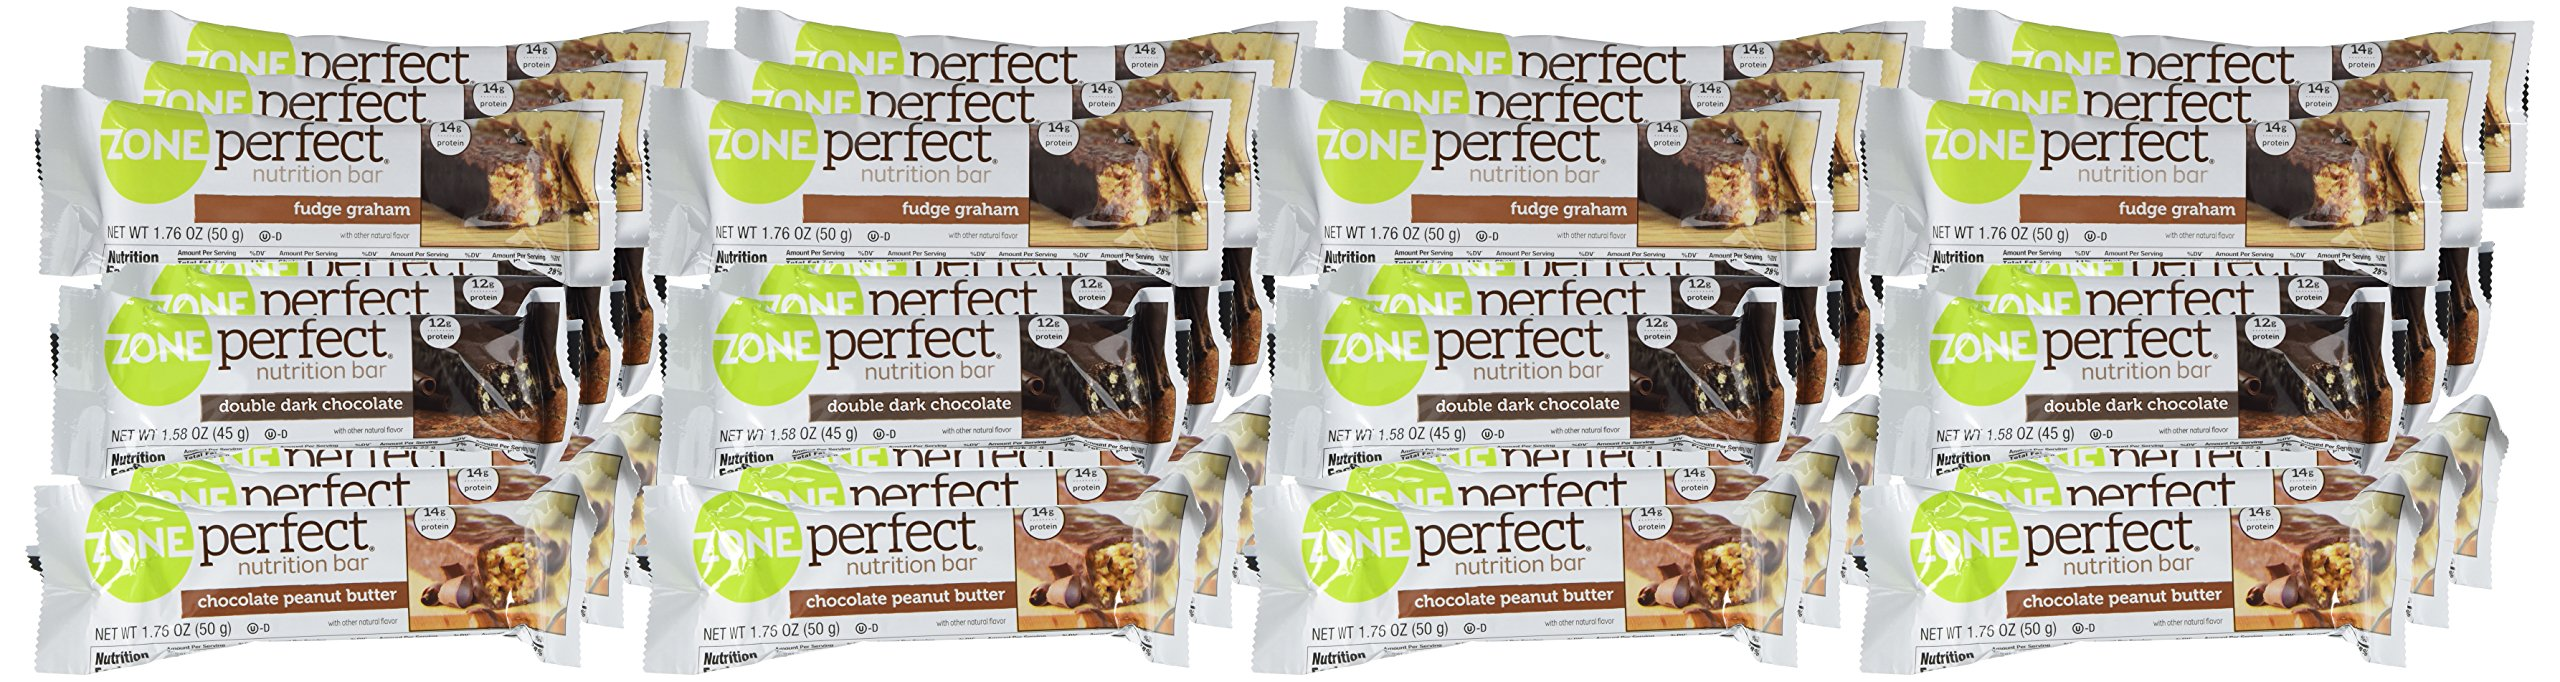 ZonePerfect Nutrition Snack Bars, Variety Pack, (36 Count) by Zoneperfect Classic (Image #1)